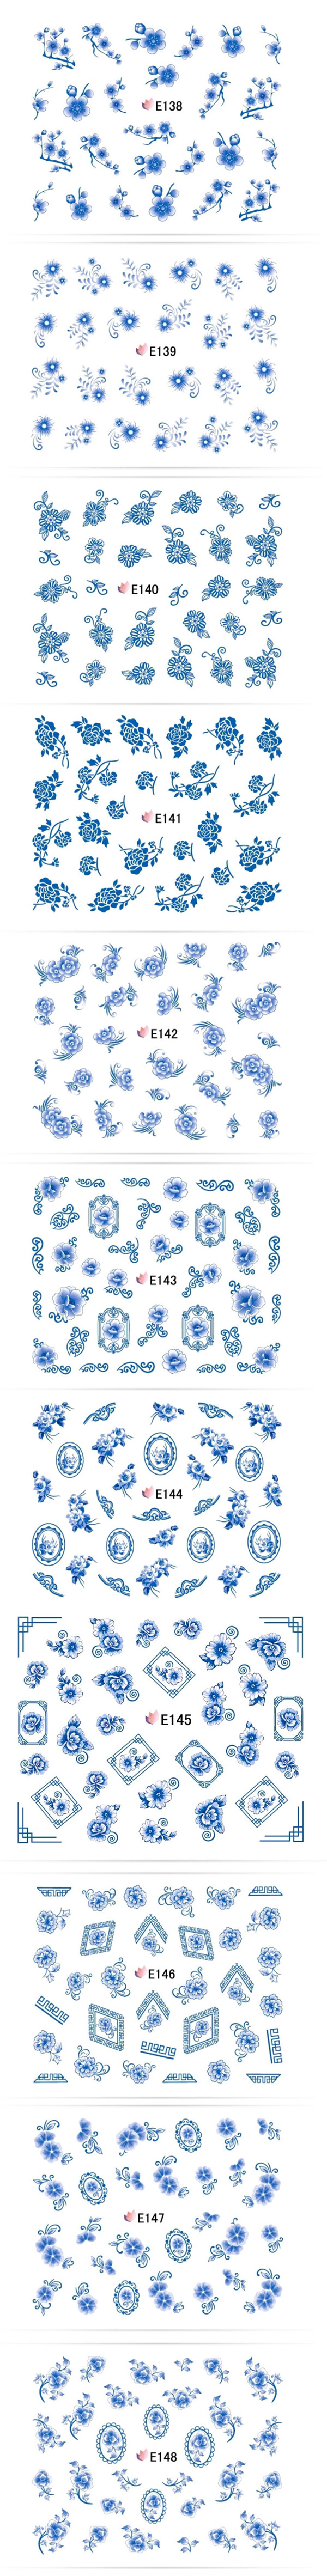 $1.90 1 sheet 3D Nail Stickers Chinese Painting Blue Flower Series Nail Art Decoration - BornPrettyStore.com